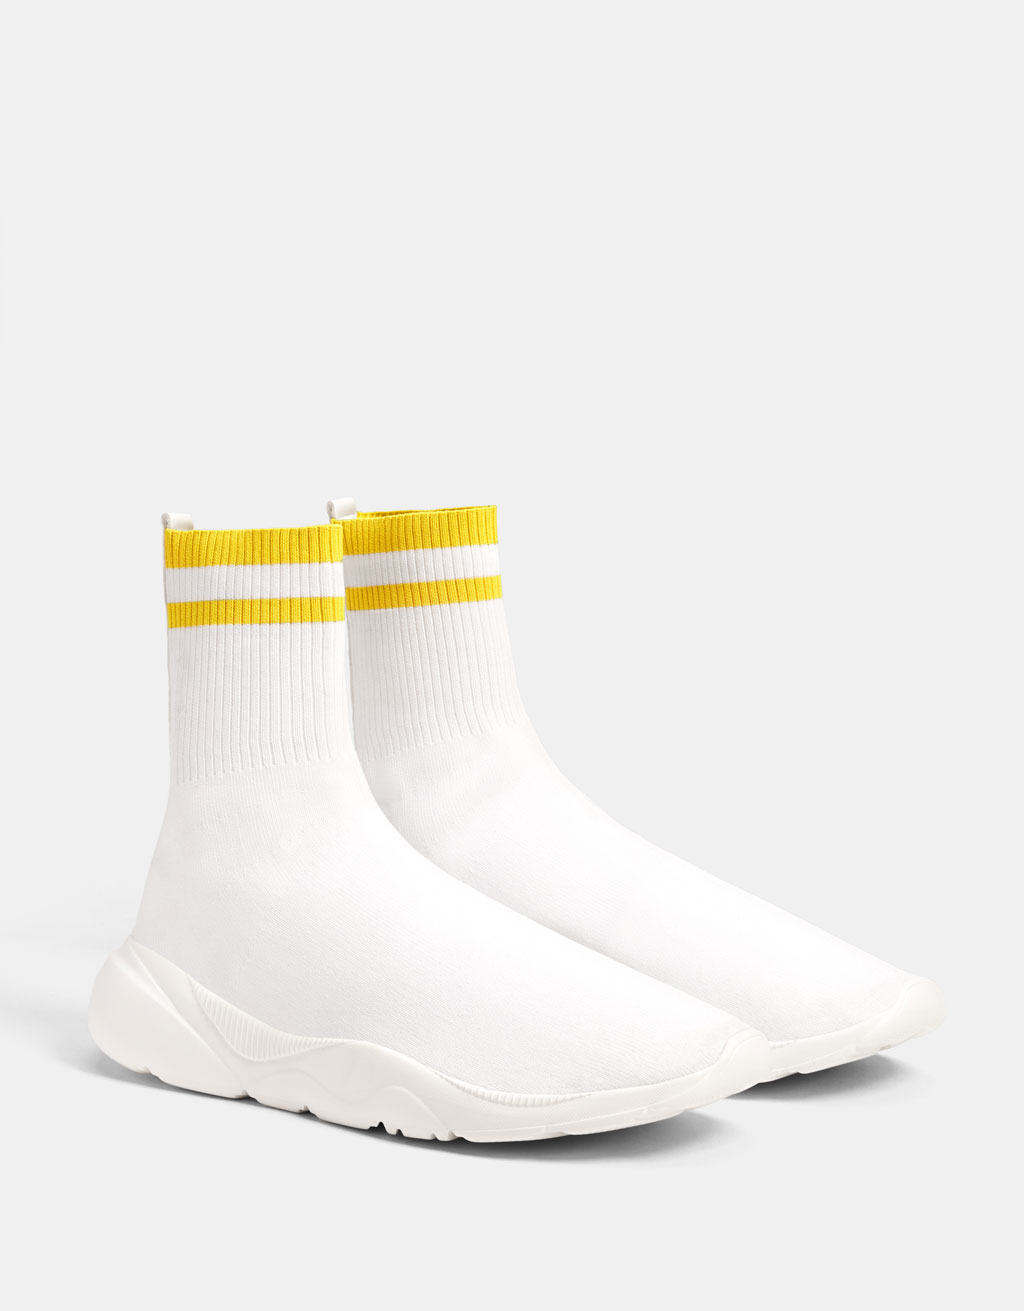 Men's high-top striped sock-style trainers